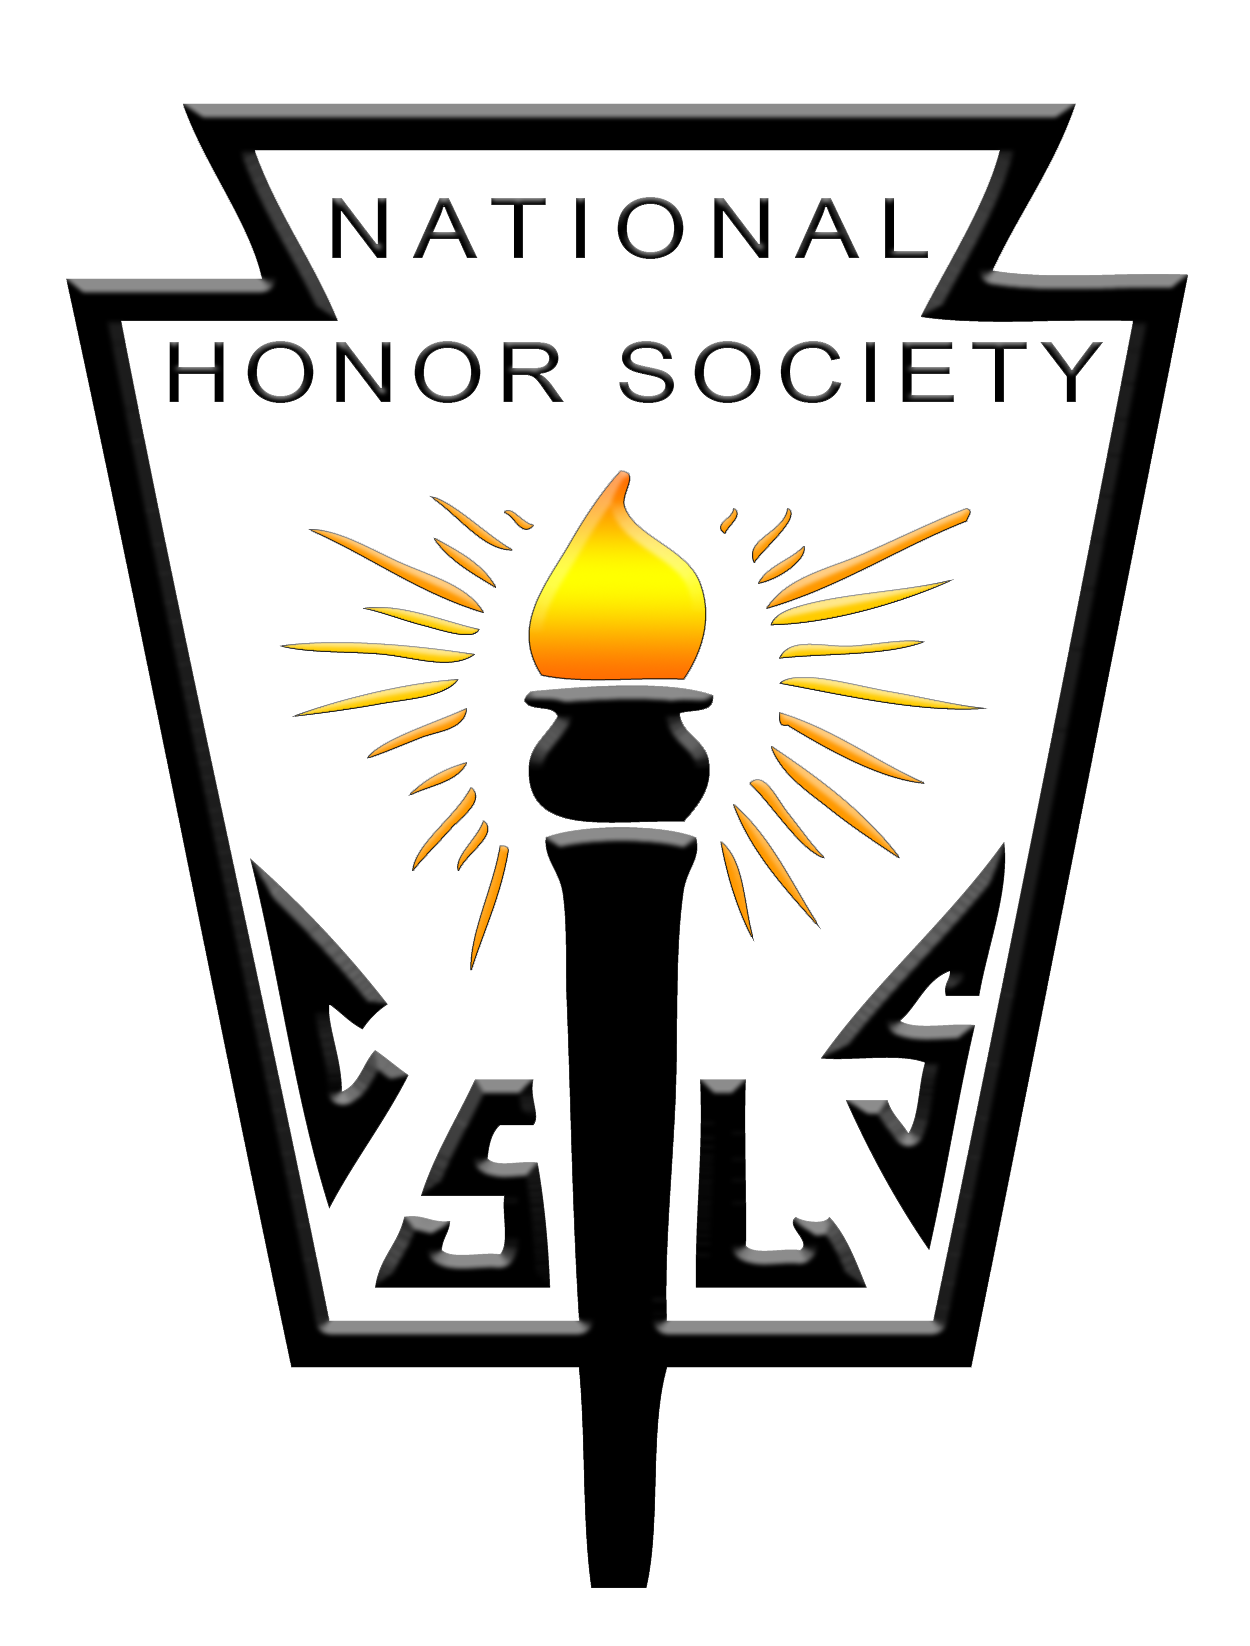 Ceremony clipart honor Academy About Valley Society Induction